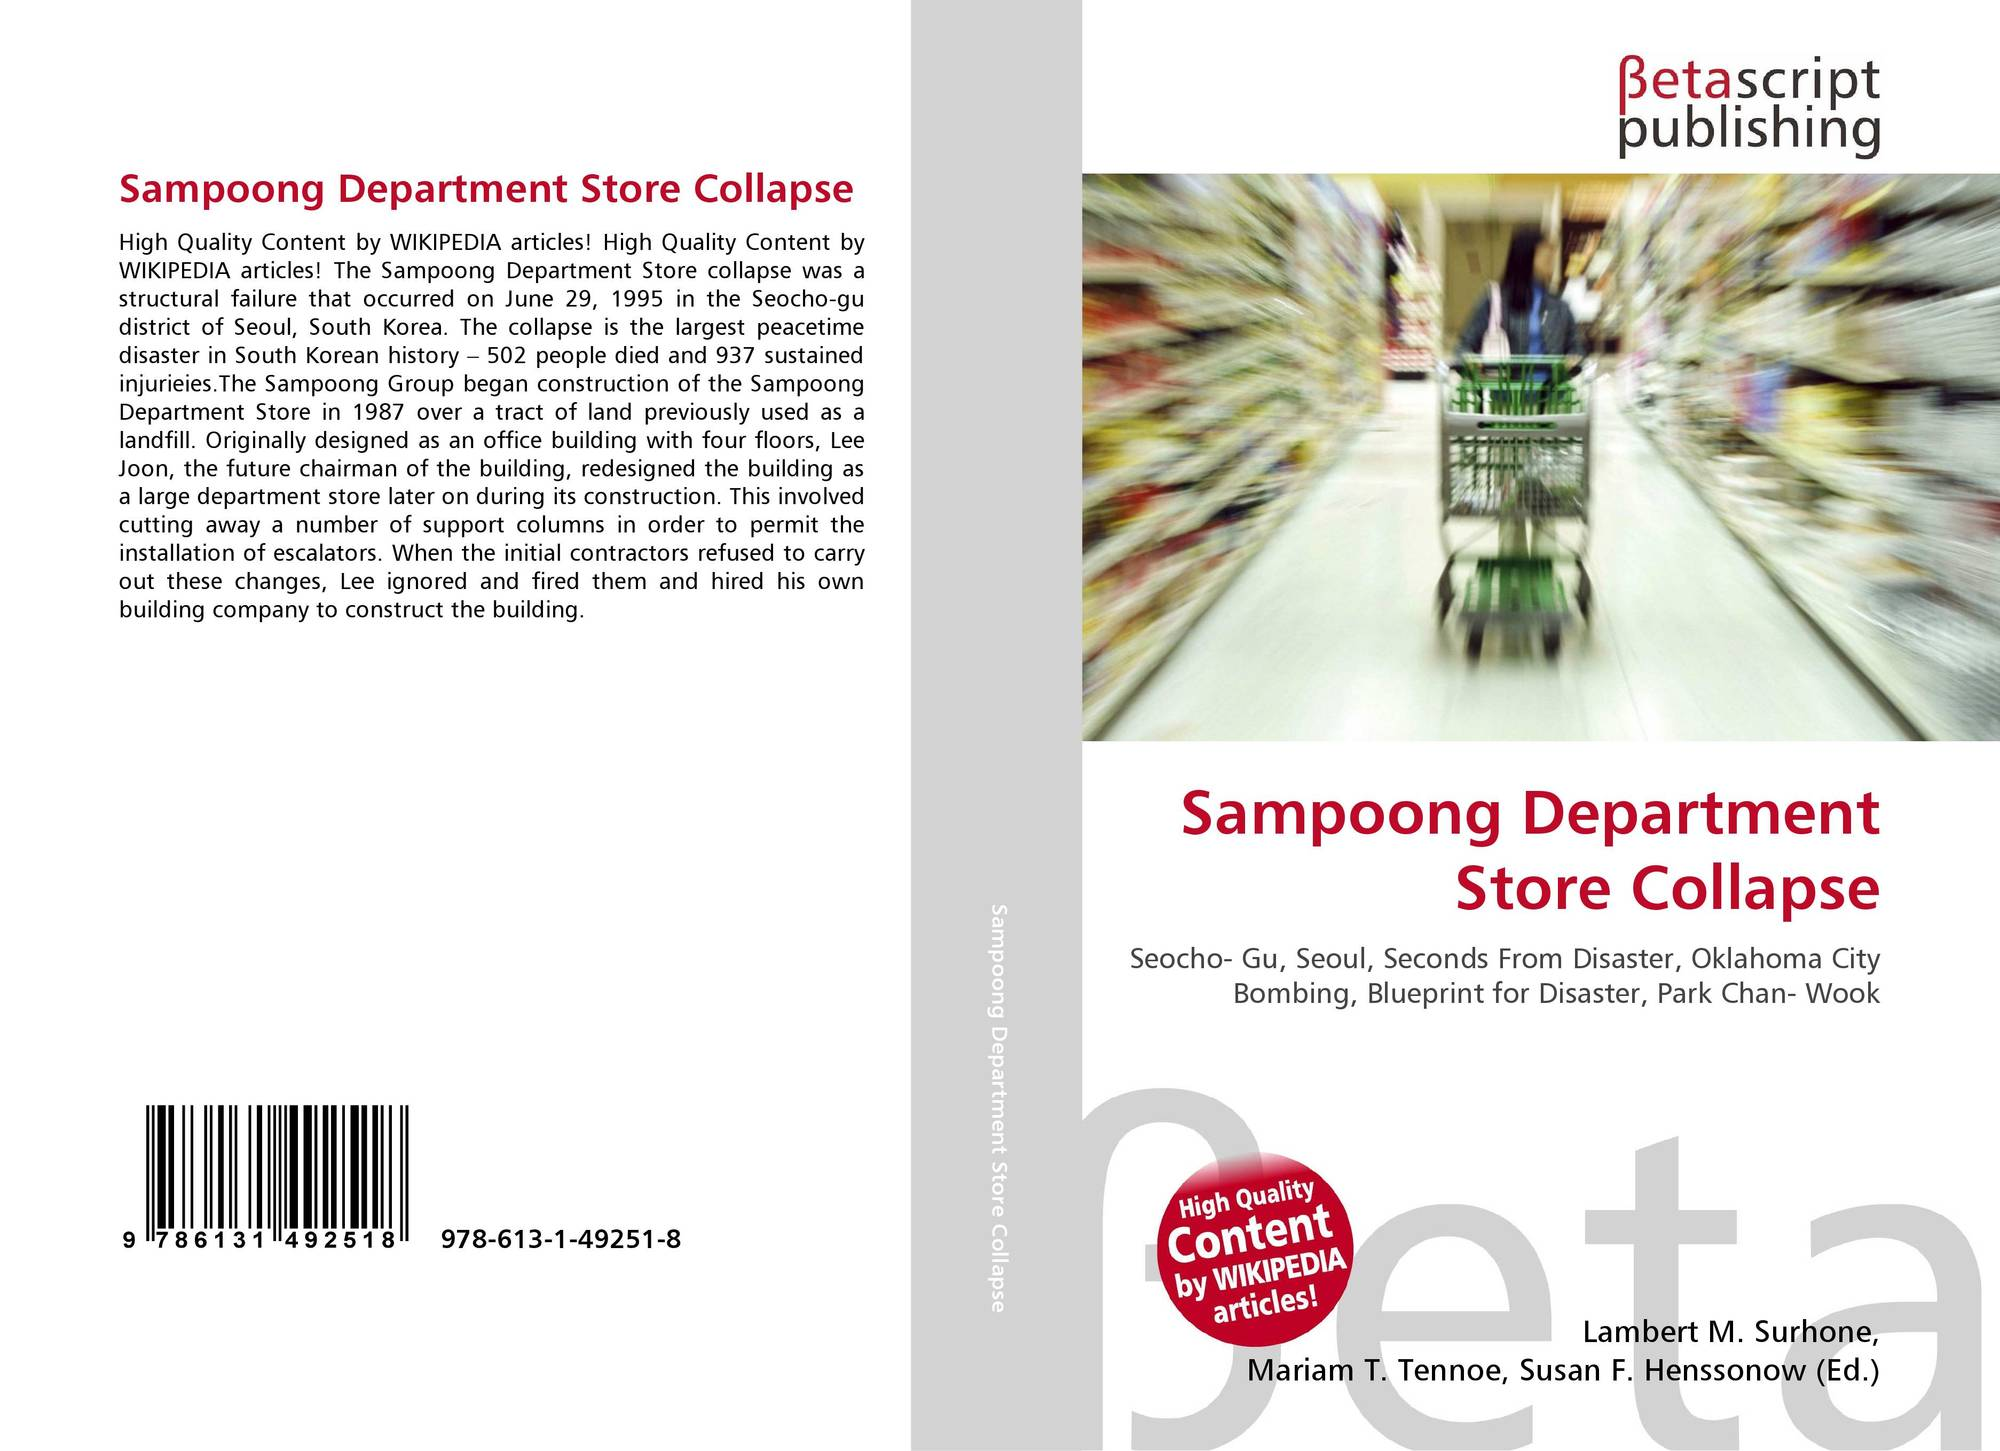 Sampoong department store collapse 978 613 1 49251 8 6131492514 9786131492518 malvernweather